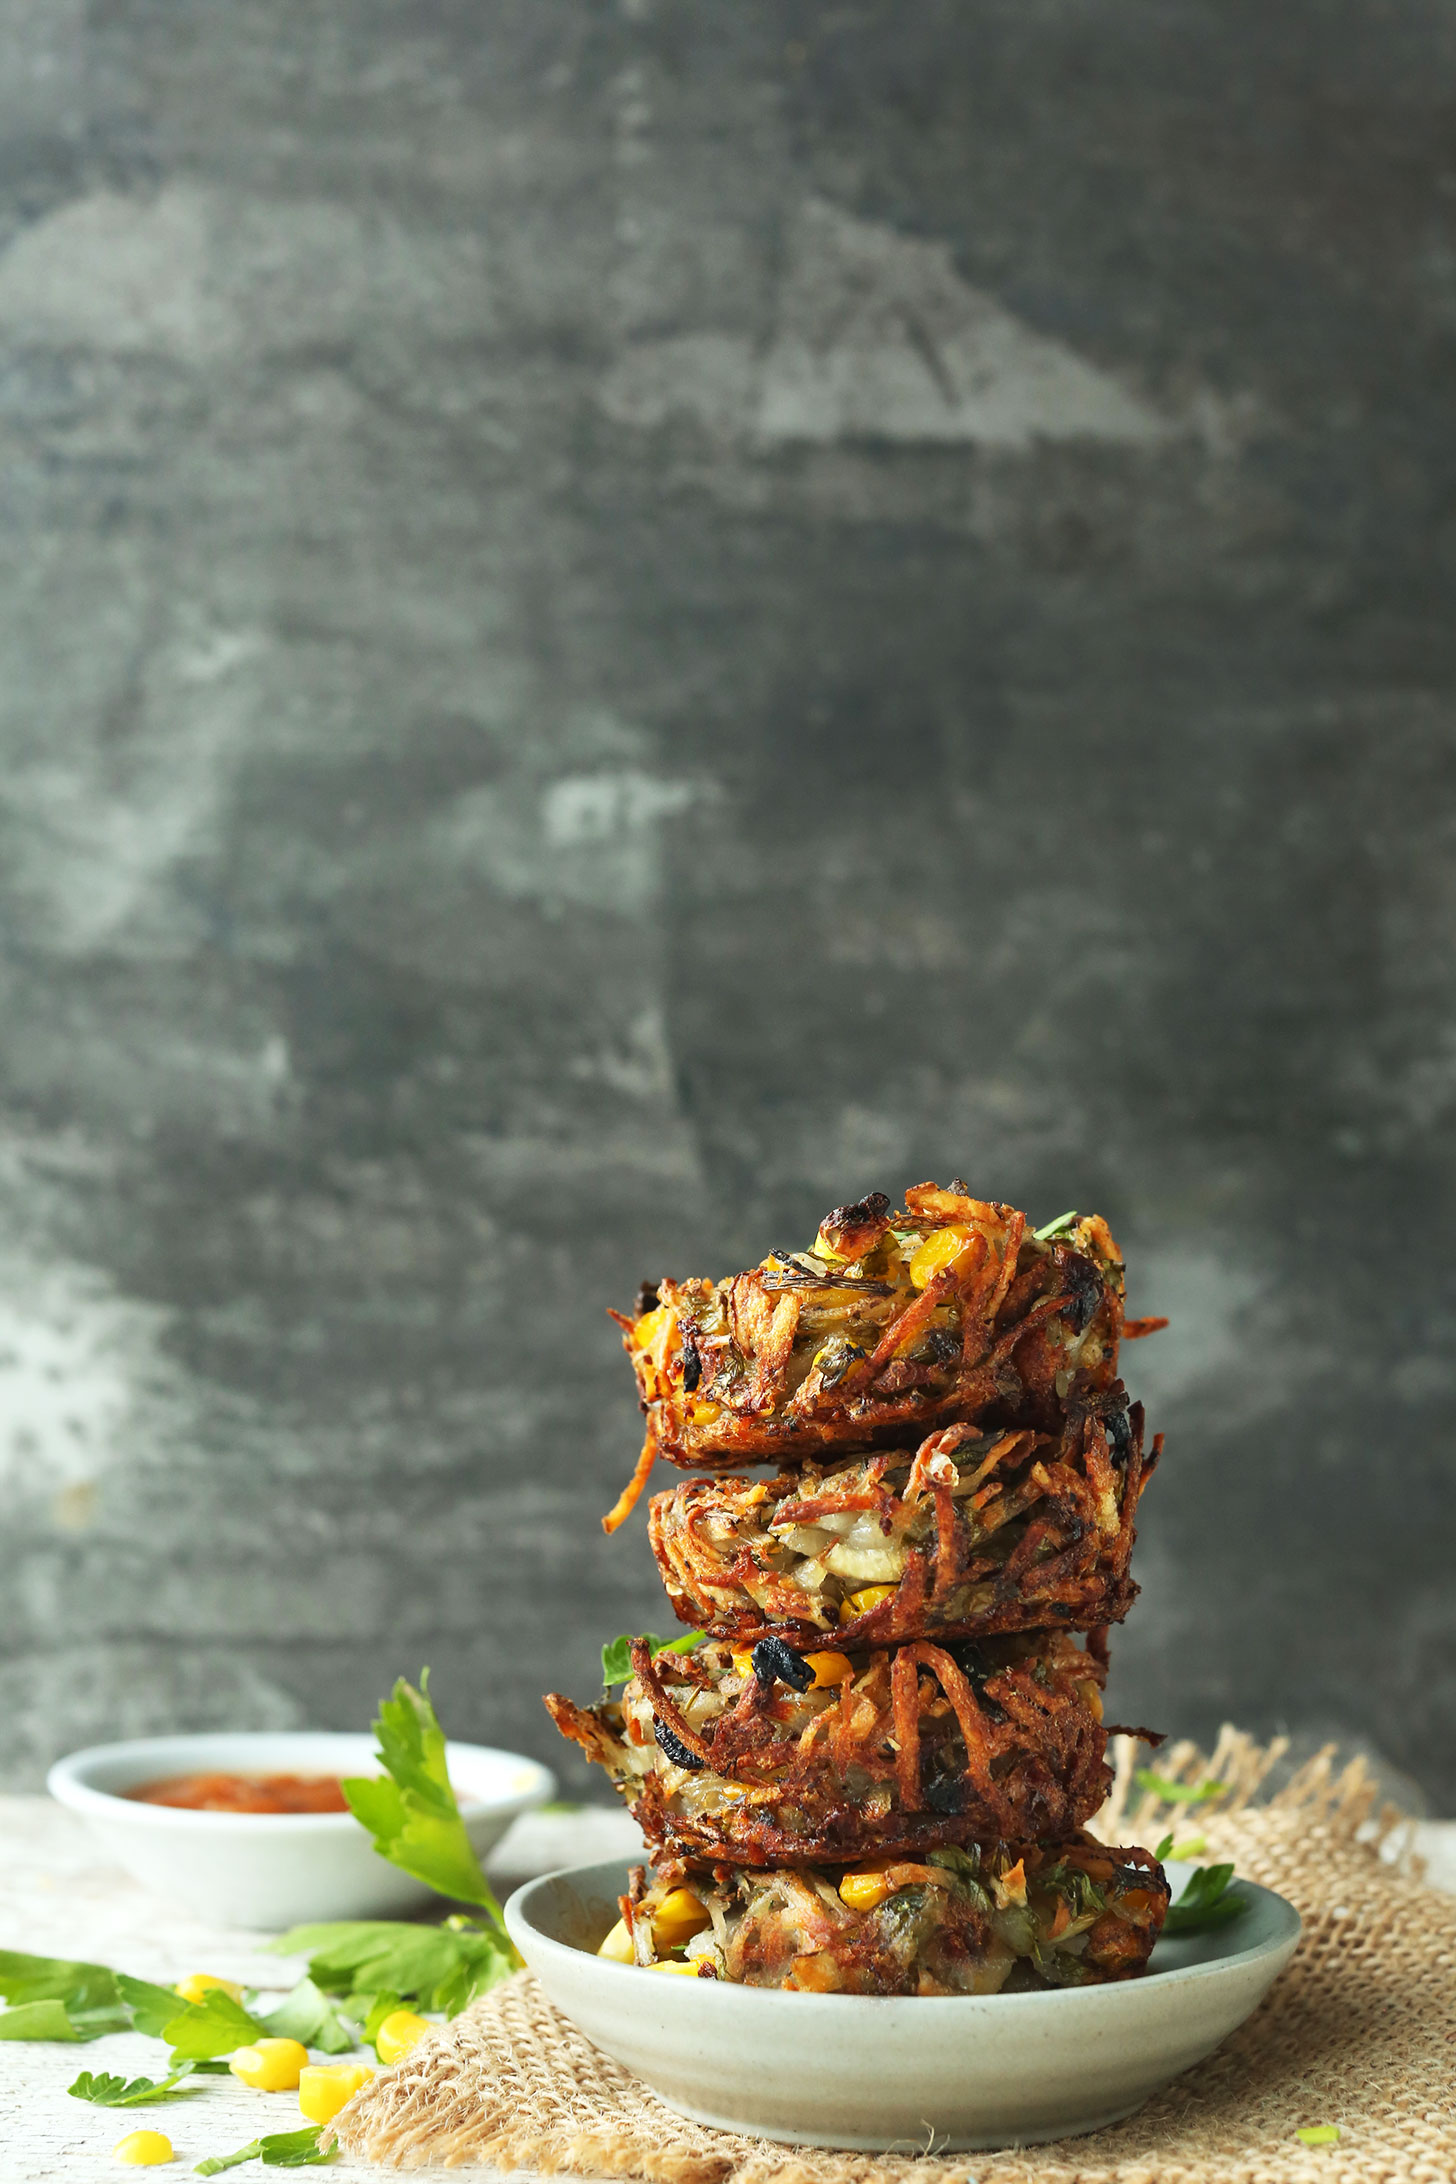 7-Ingredient CRISPY HASH BROWN Haystacks with corn, parsley and shallot. Crispy, savory, SO perfect for breakfast or brunch! #vegan #glutenfree #breakfast #recipe #minimalistbaker